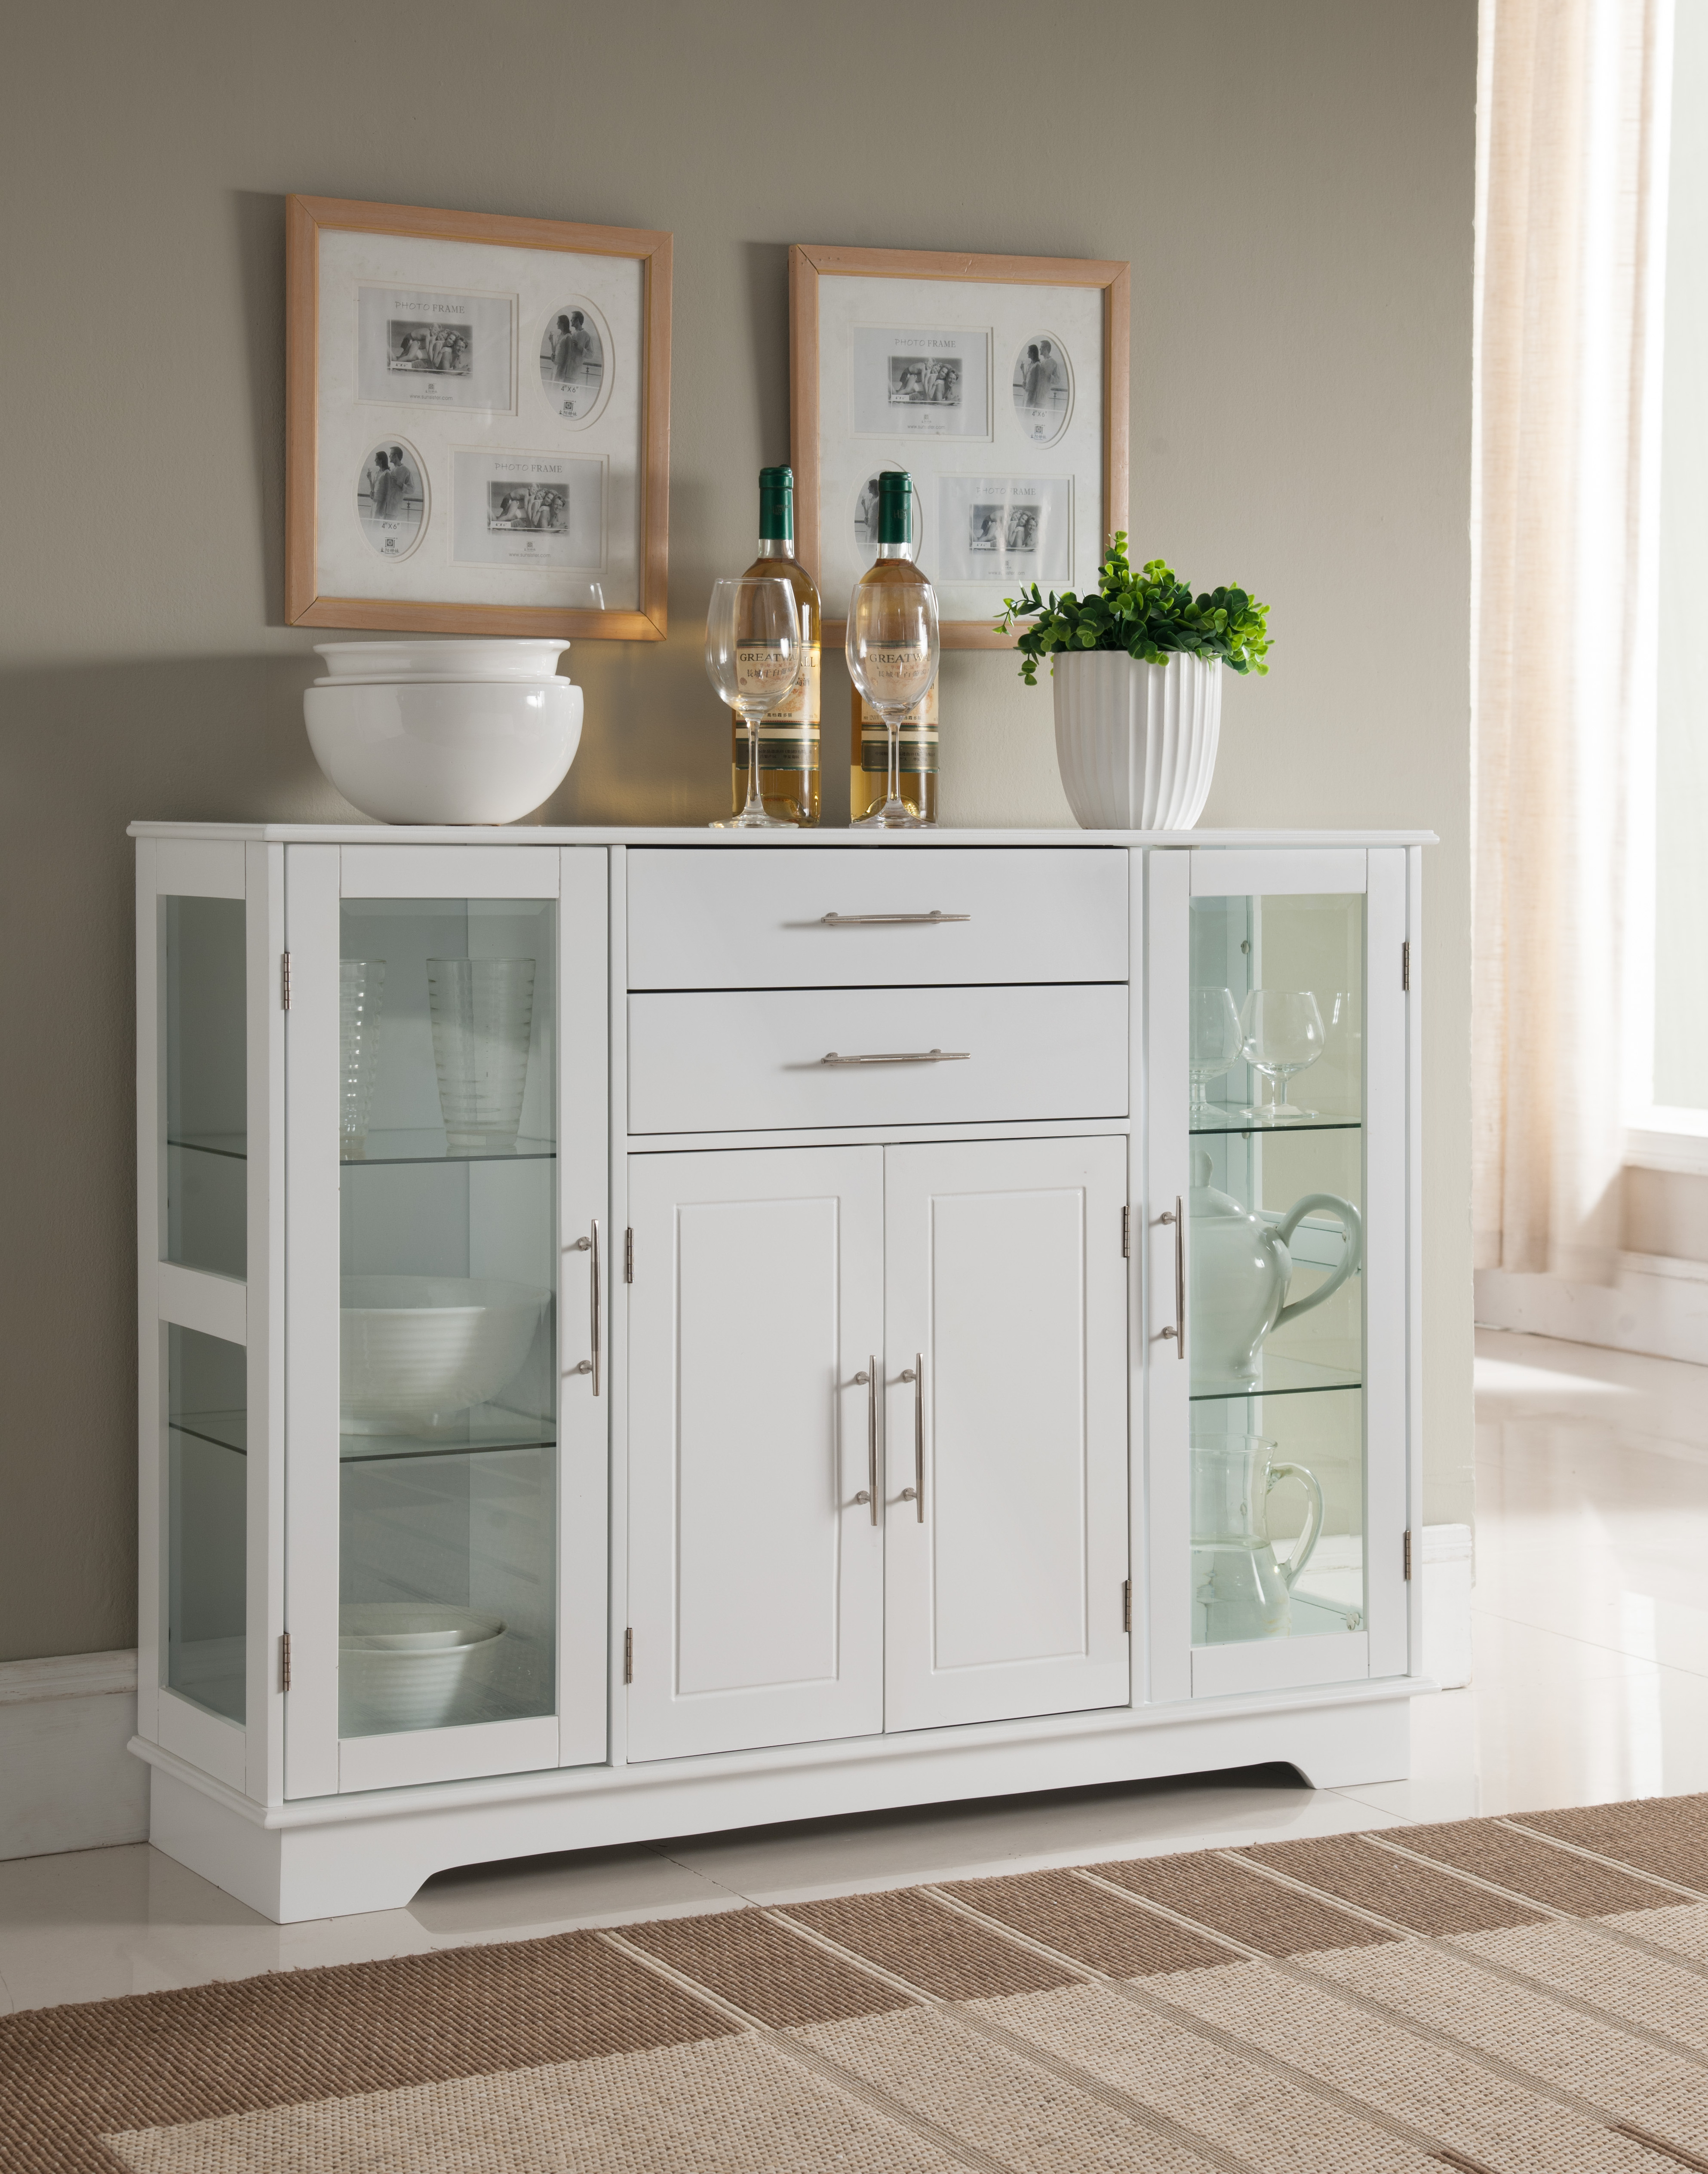 Elias White Wood Contemporary Kitchen Buffet Display China Cabinet With  Storage Drawers & Glass Doors In Contemporary Wooden Buffets With One Side Door Storage Cabinets And Two Drawers (View 4 of 20)